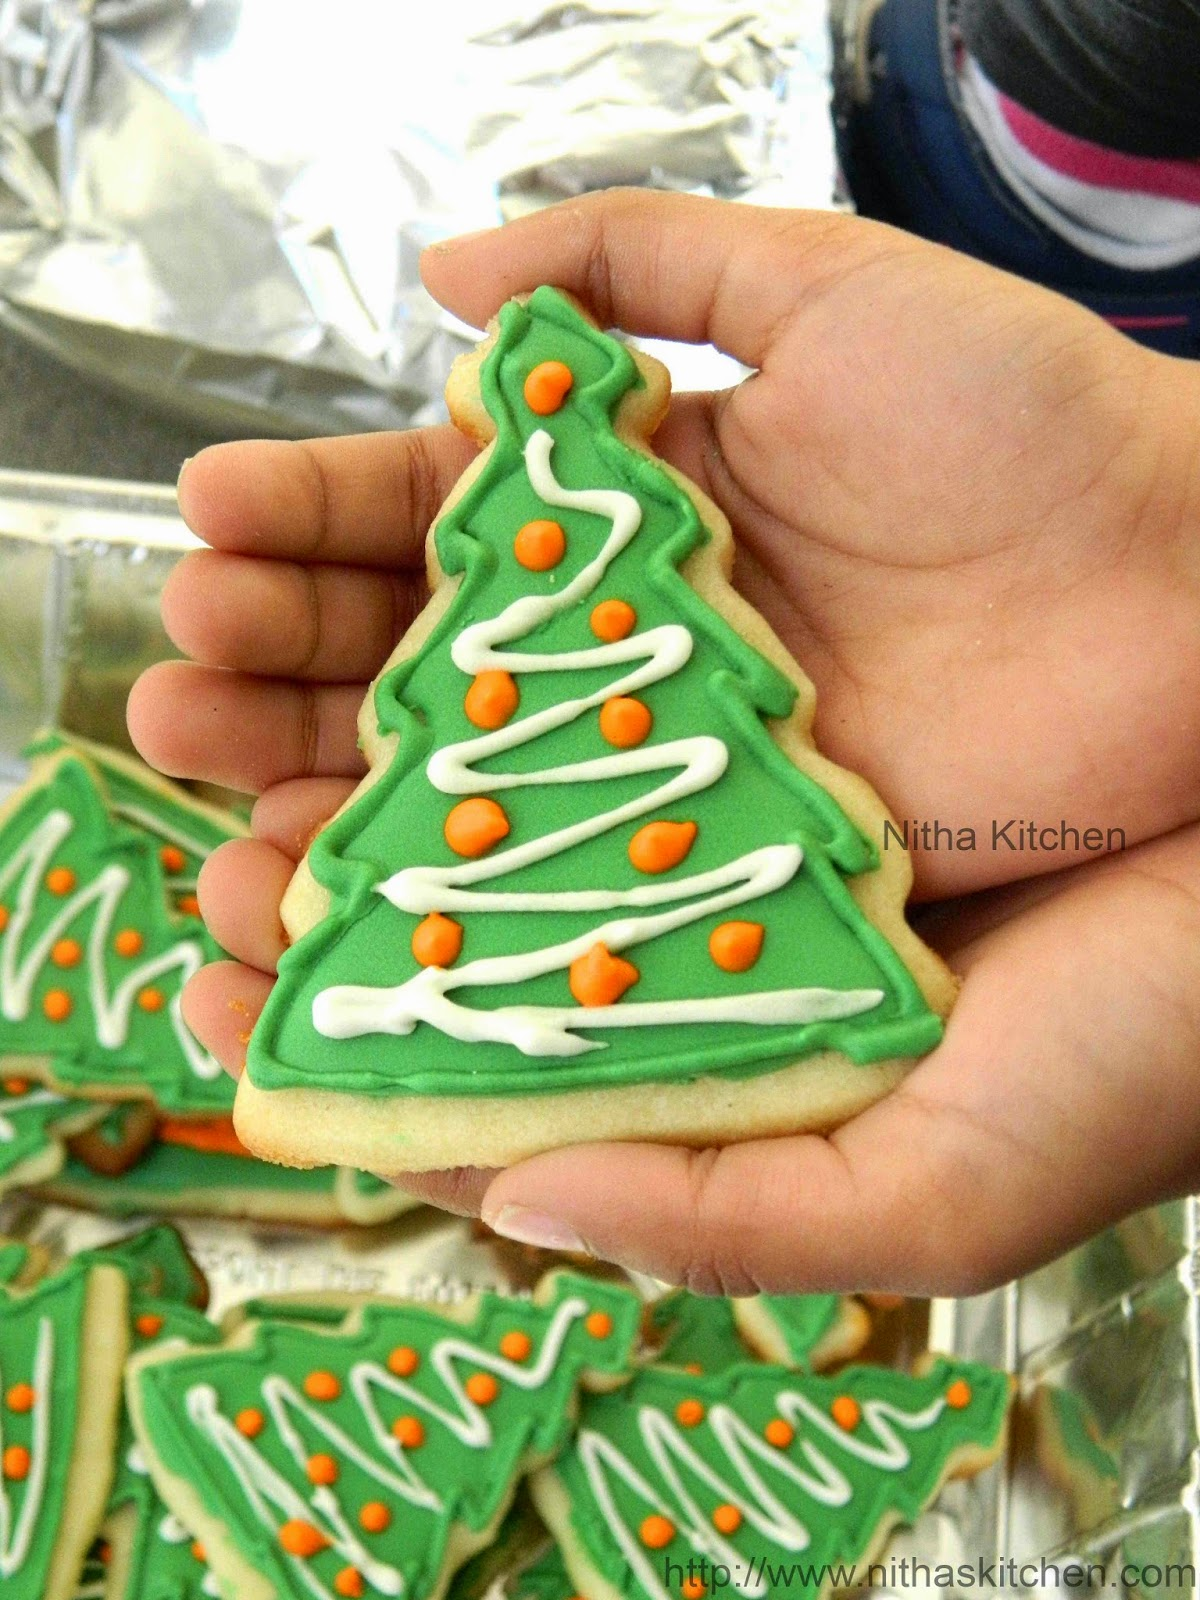 christmas sugar cookies with royal icing recipe nitha kitchen international and indian recipes - How To Decorate Christmas Cookies With Royal Icing